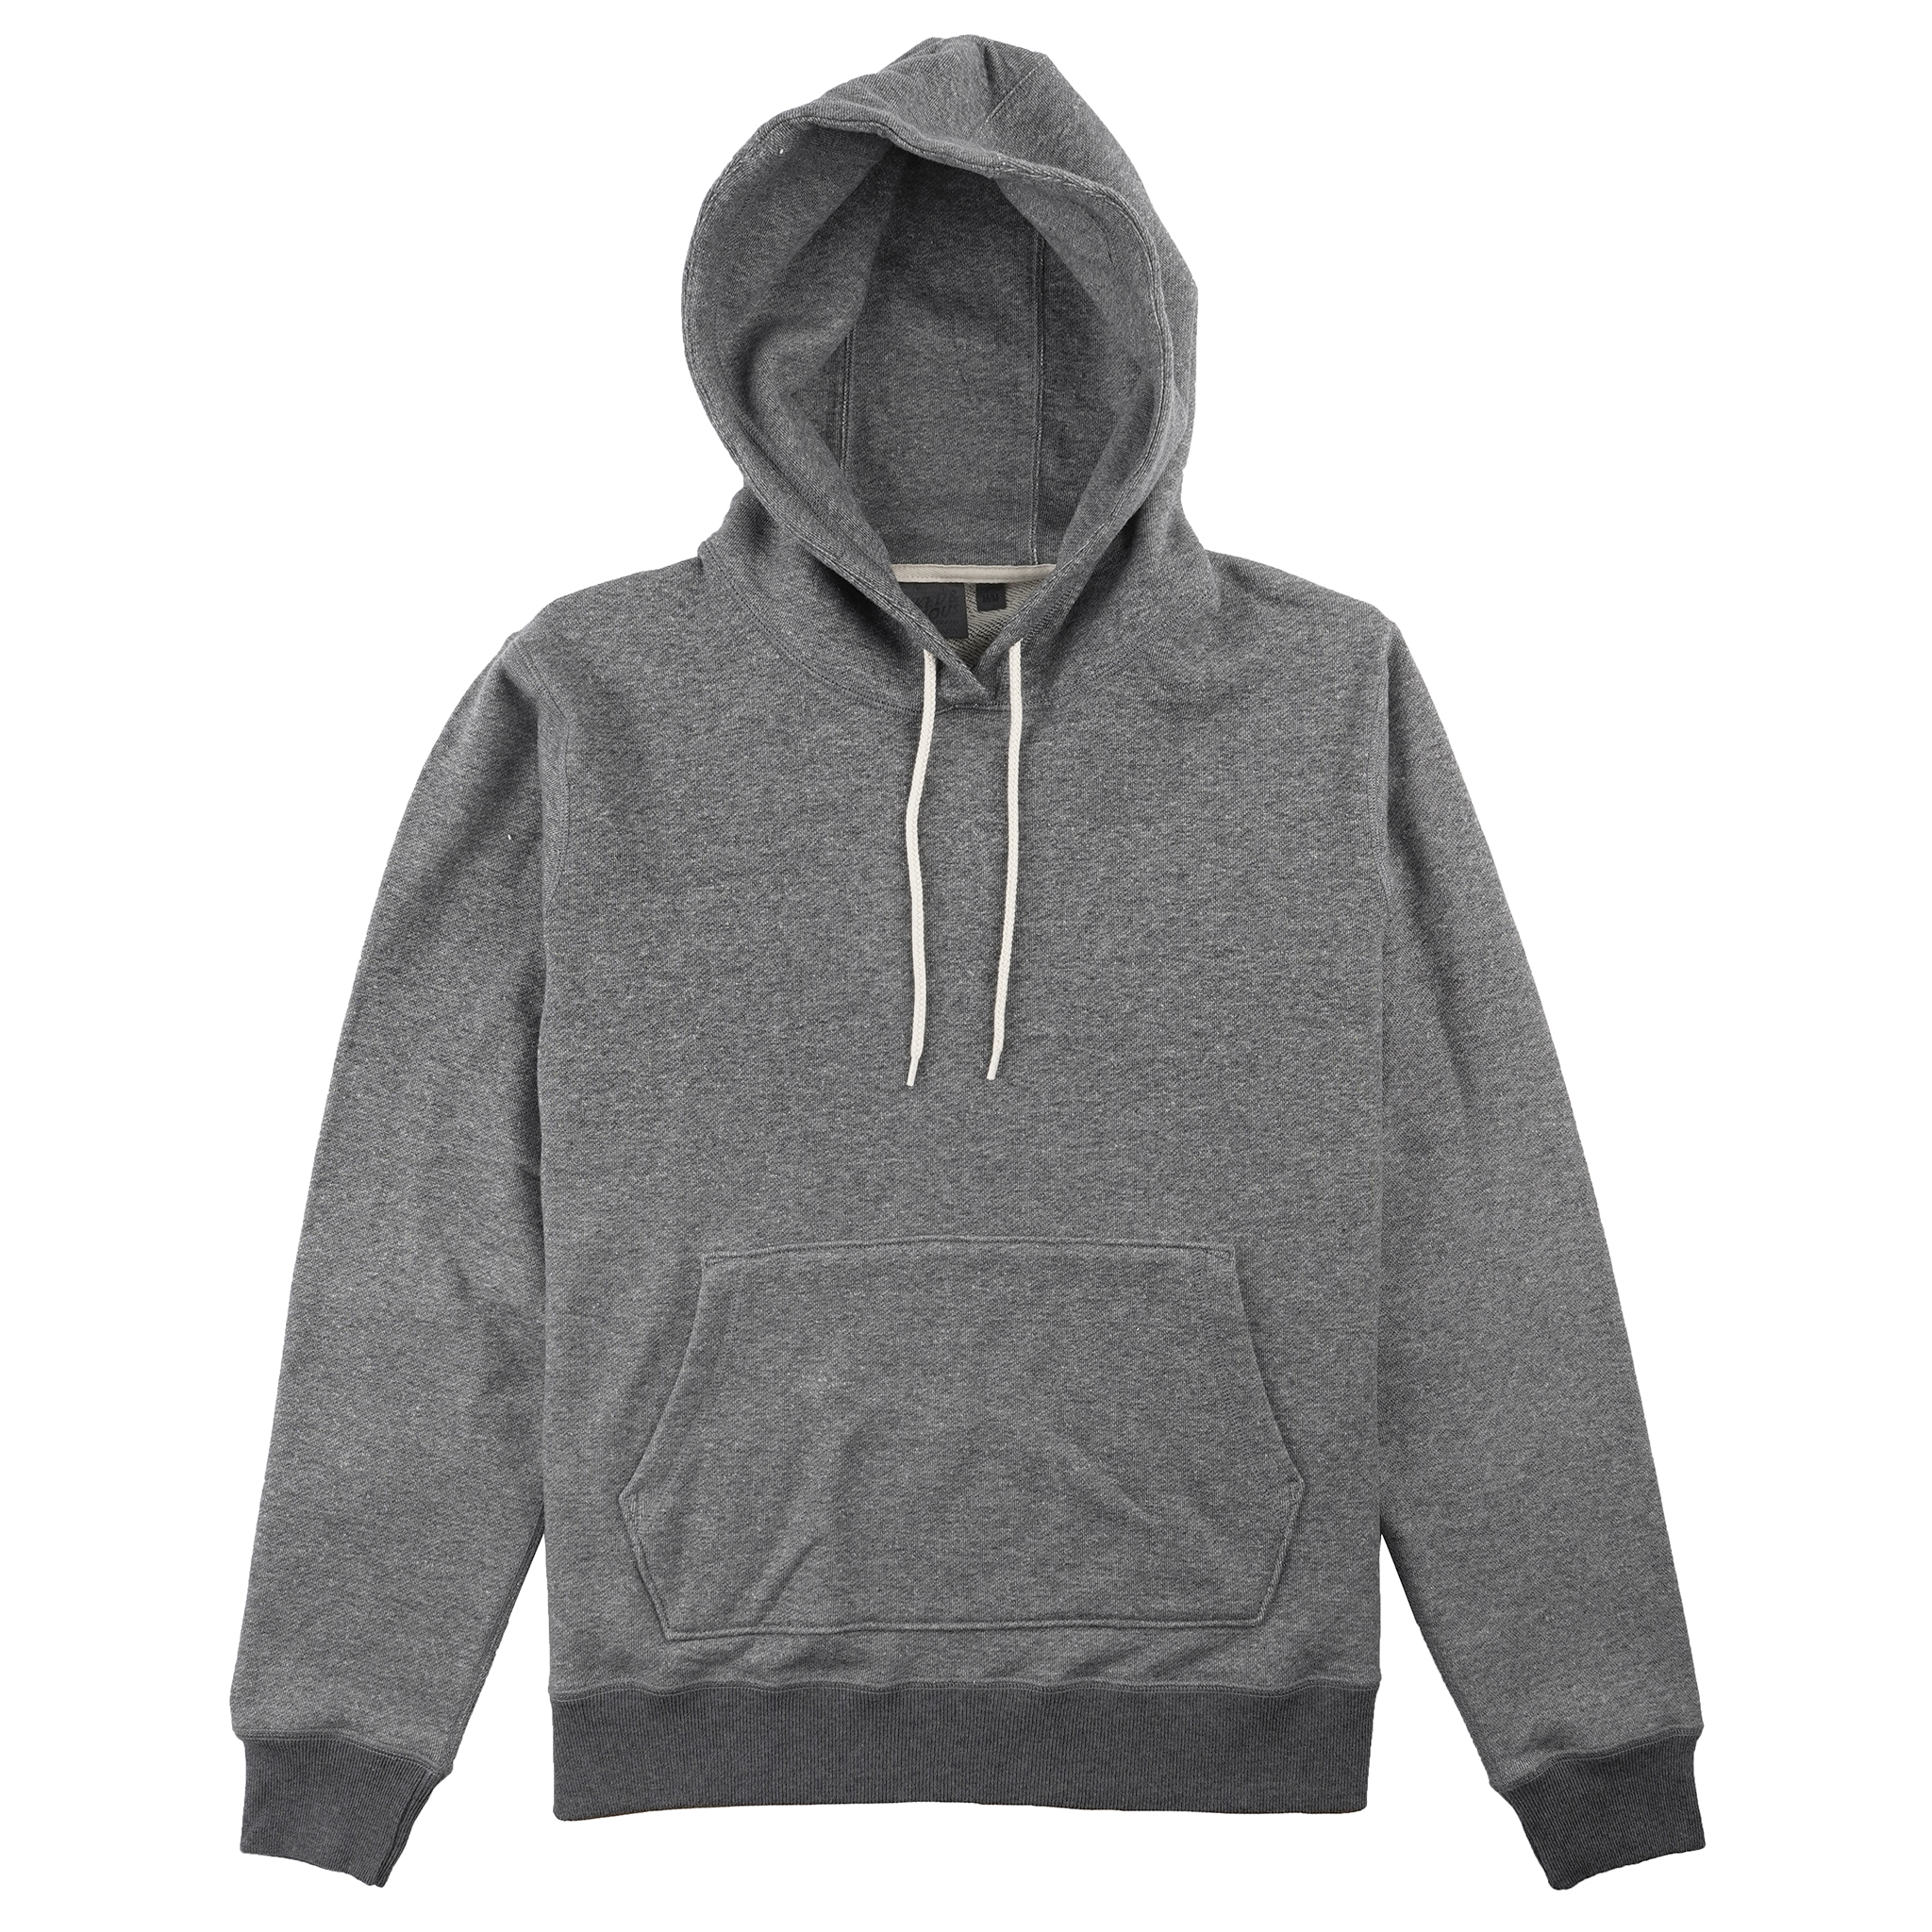 Heavyweight Terry - Charcoal - Pullover Hoodie